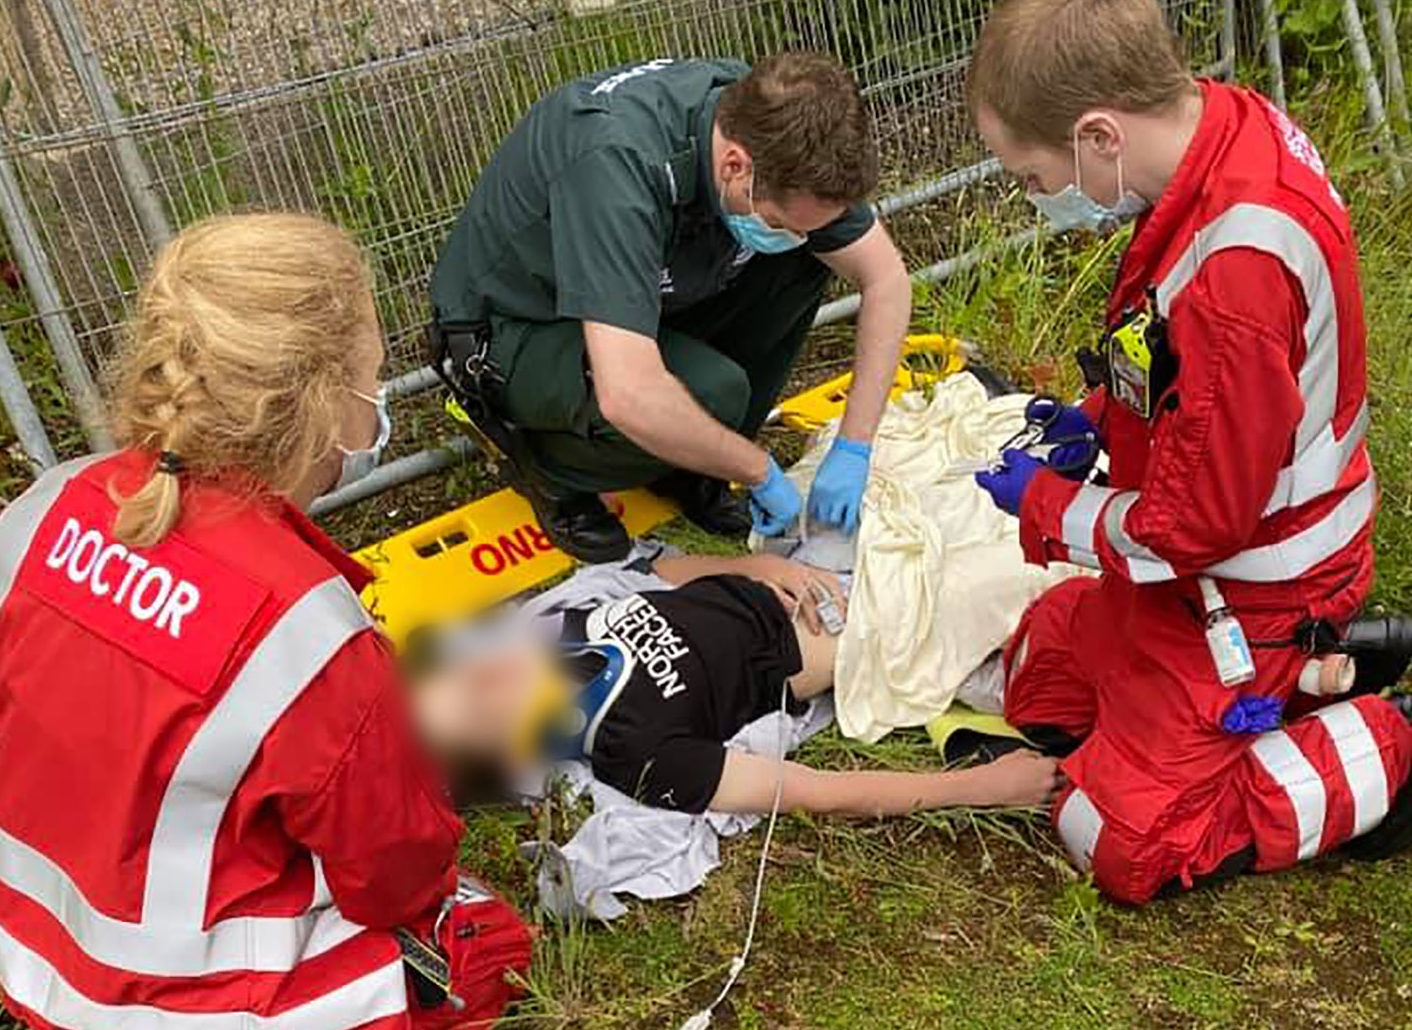 Paramedics treat Logan at the scene after he fell from a derelict building